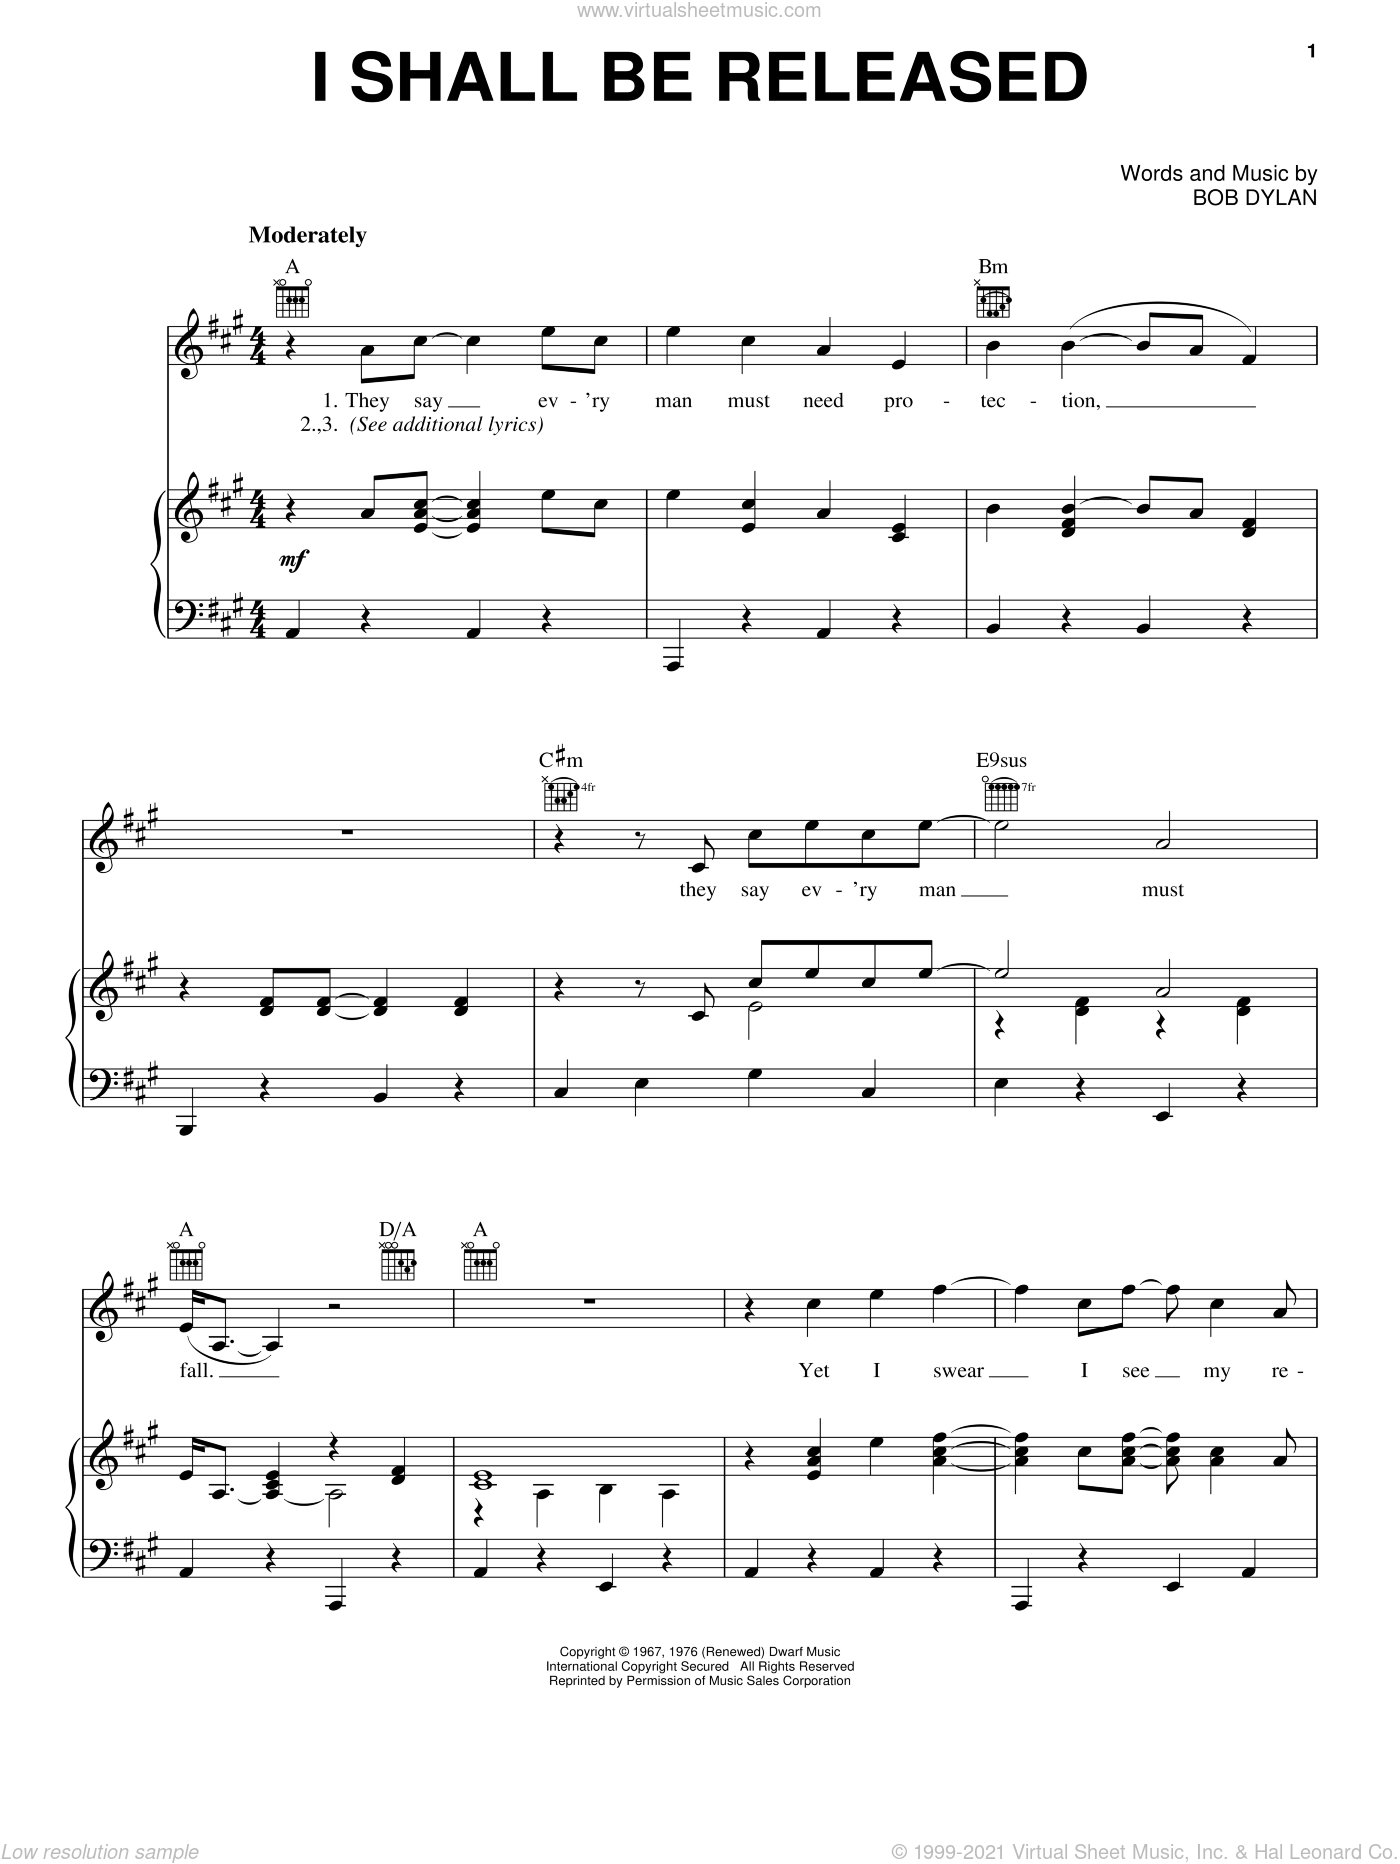 I Shall Be Released (from the musical A Night With Janis Joplin) sheet music for voice, piano or guitar by Bob Dylan, intermediate skill level